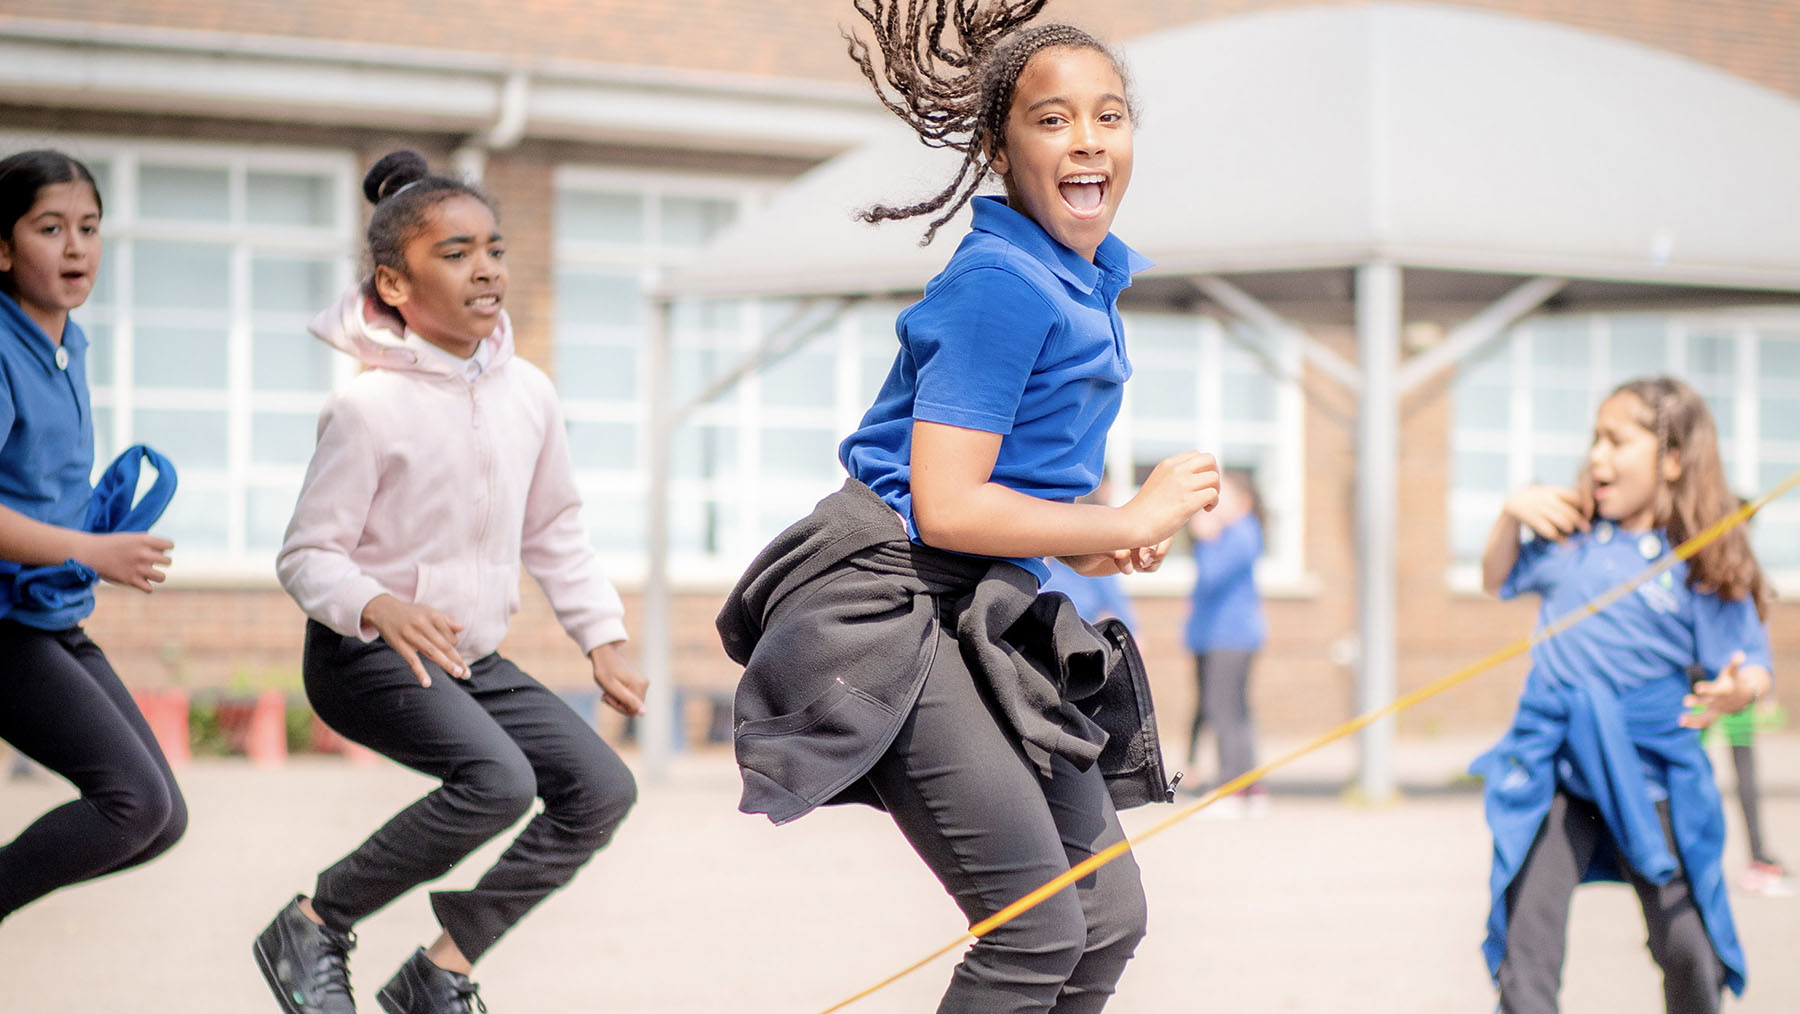 girls jumping on skipping rope in playground